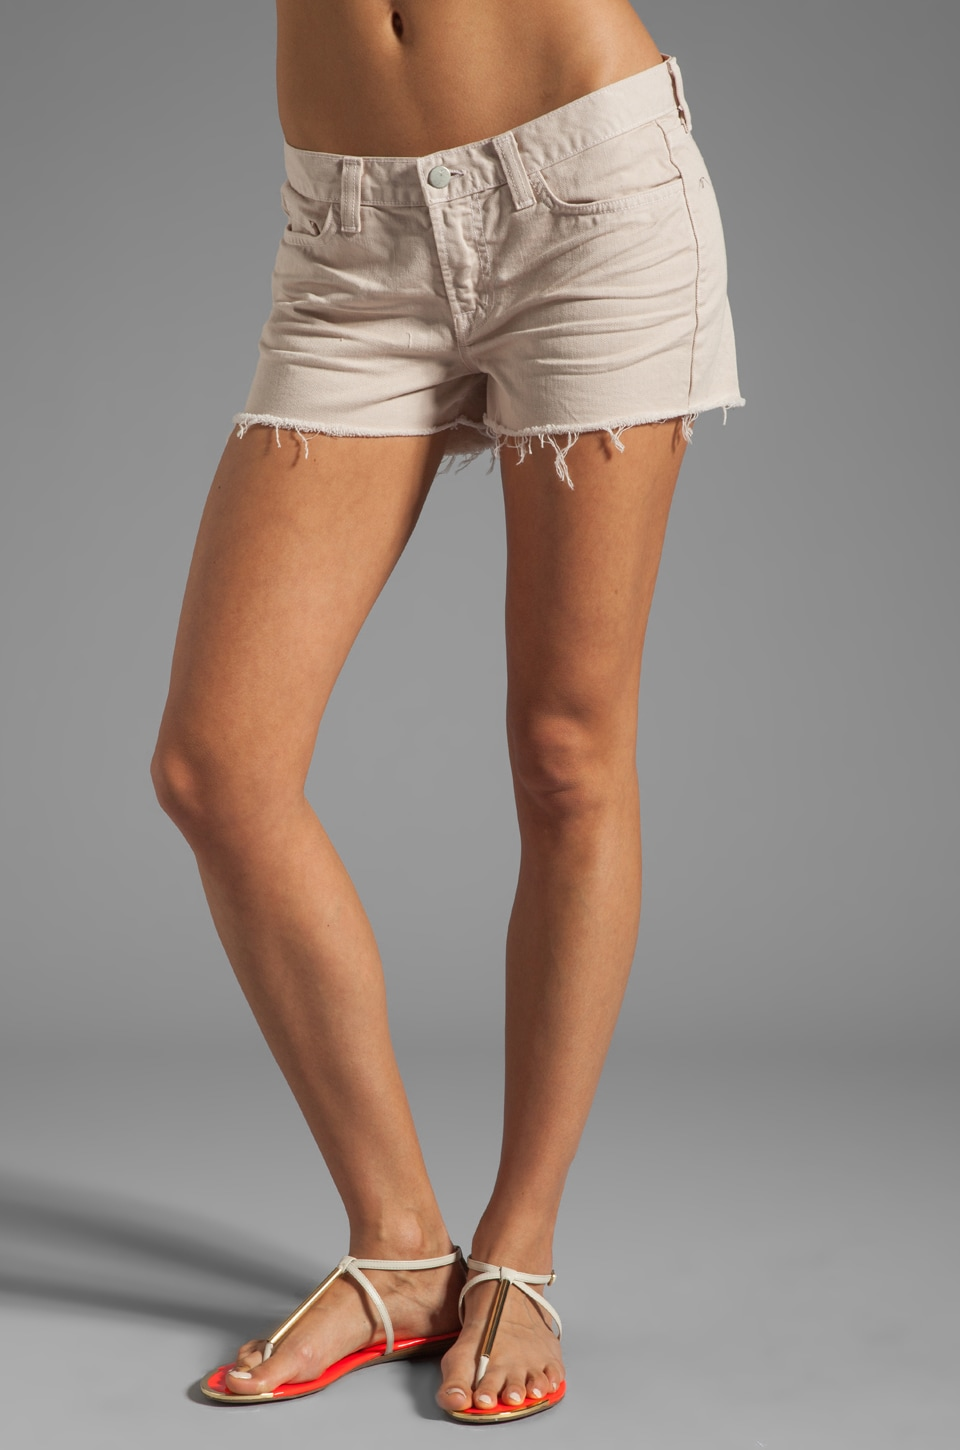 J Brand Cutoff Short in Light Magnolia